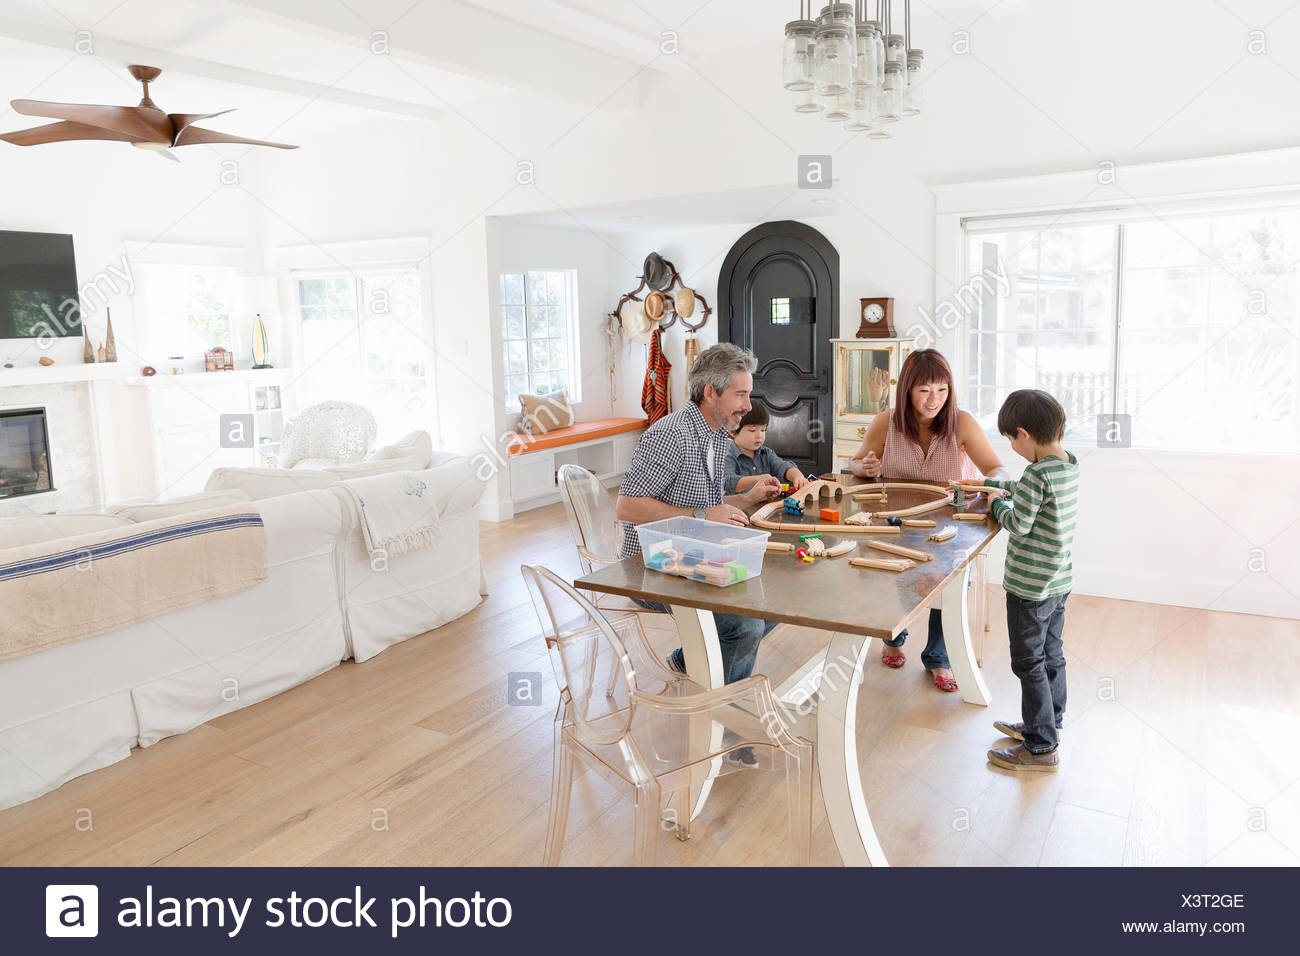 Family playing with wood train set at dining table - Stock Image & Boys Playing With Train Set Stock Photos u0026 Boys Playing With Train ...